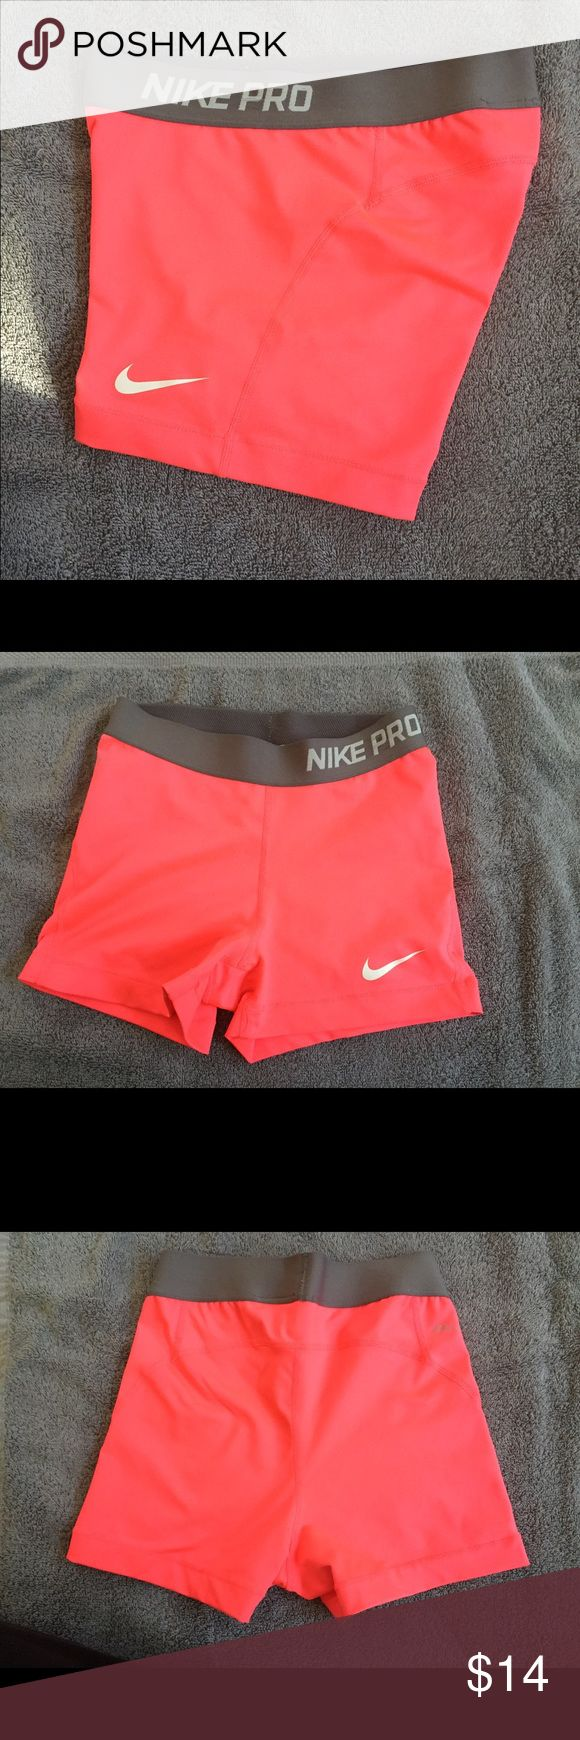 Nike Pro compression short Nike compression short for women, size small, bright coral in color. Lightly worn but in great condition Nike Shorts